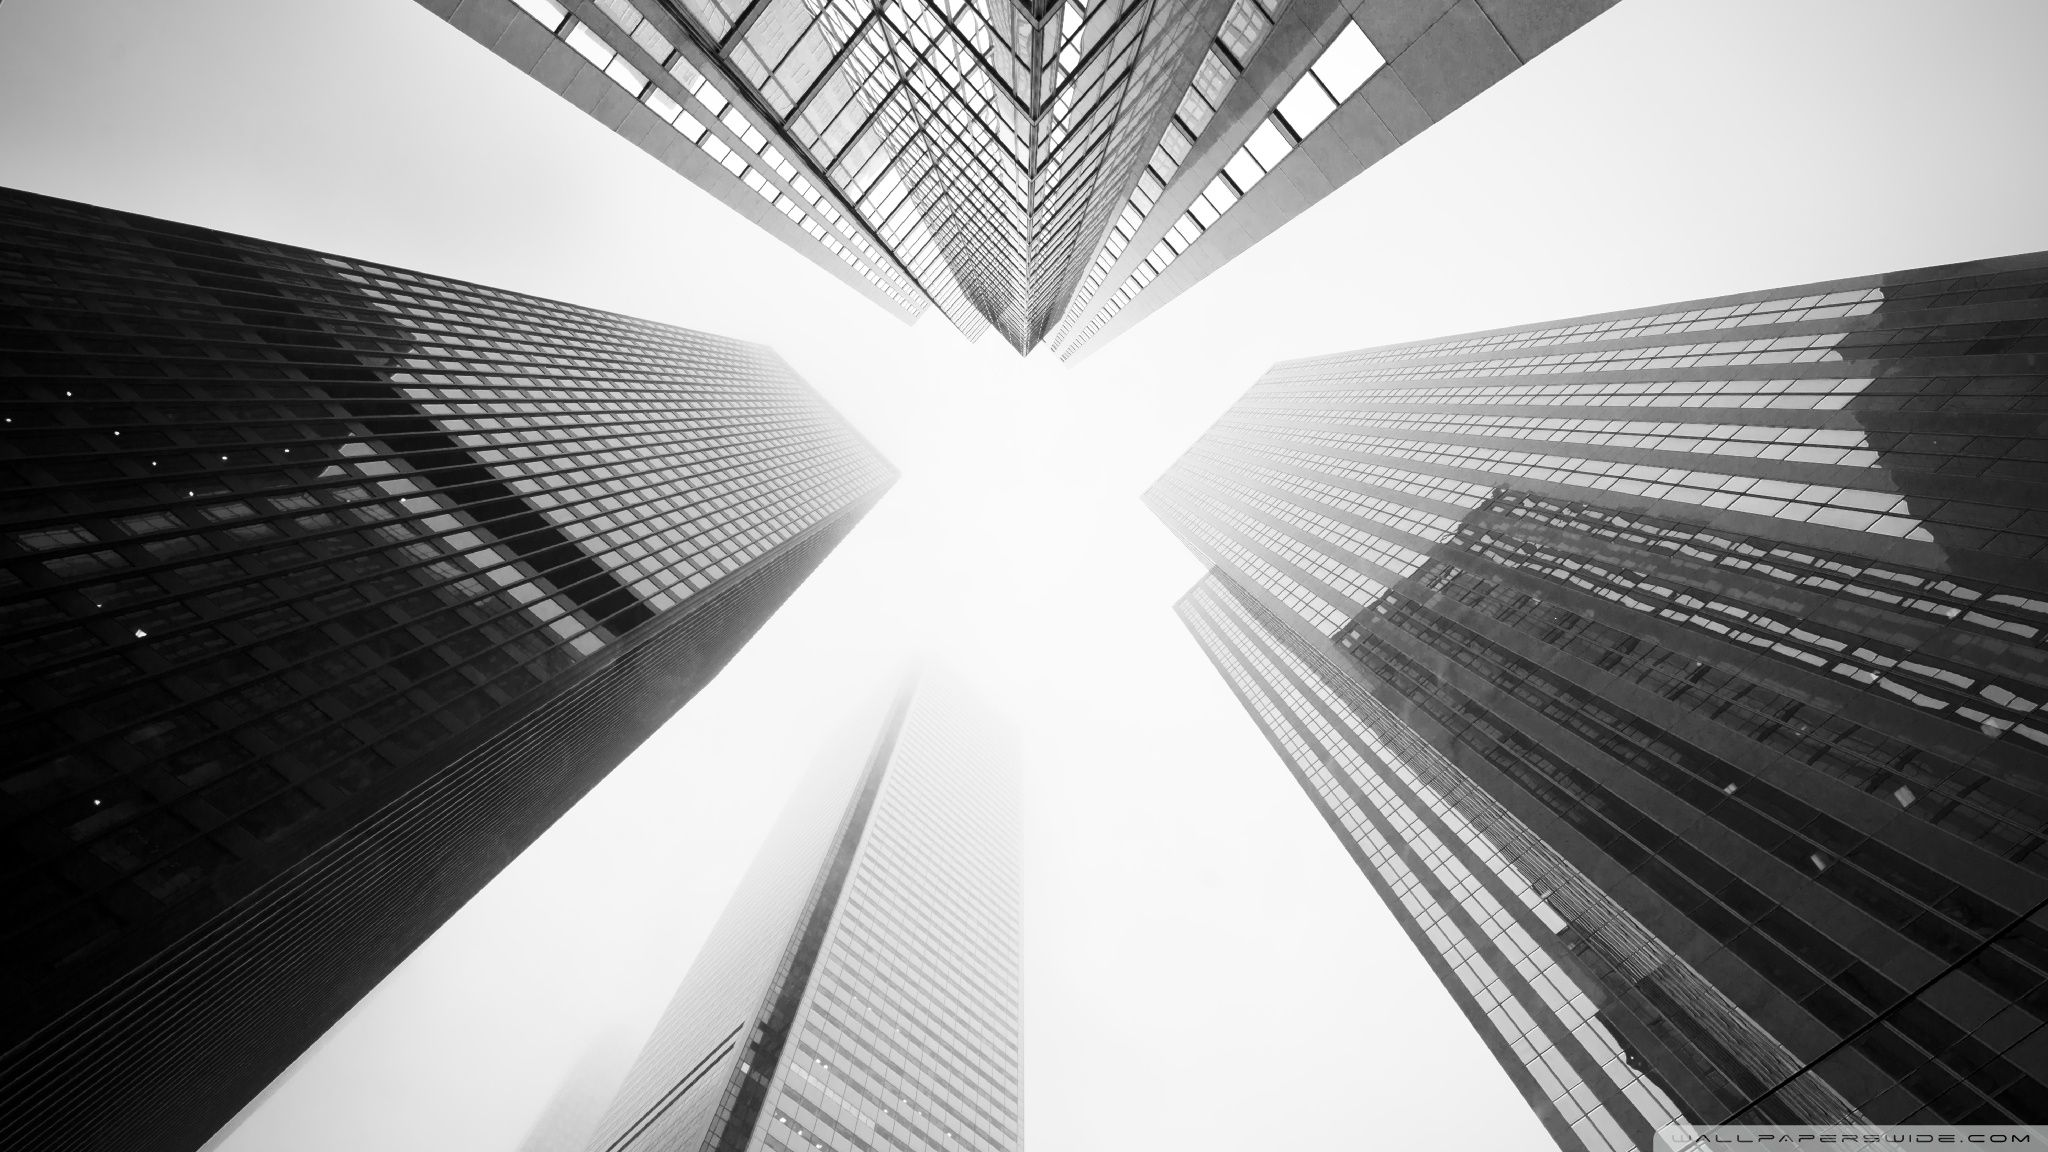 Toronto Skyscrapers Black And White 4k Hd Desktop Wallpaper For White Background Hd Black And White Wallpaper White Wallpaper